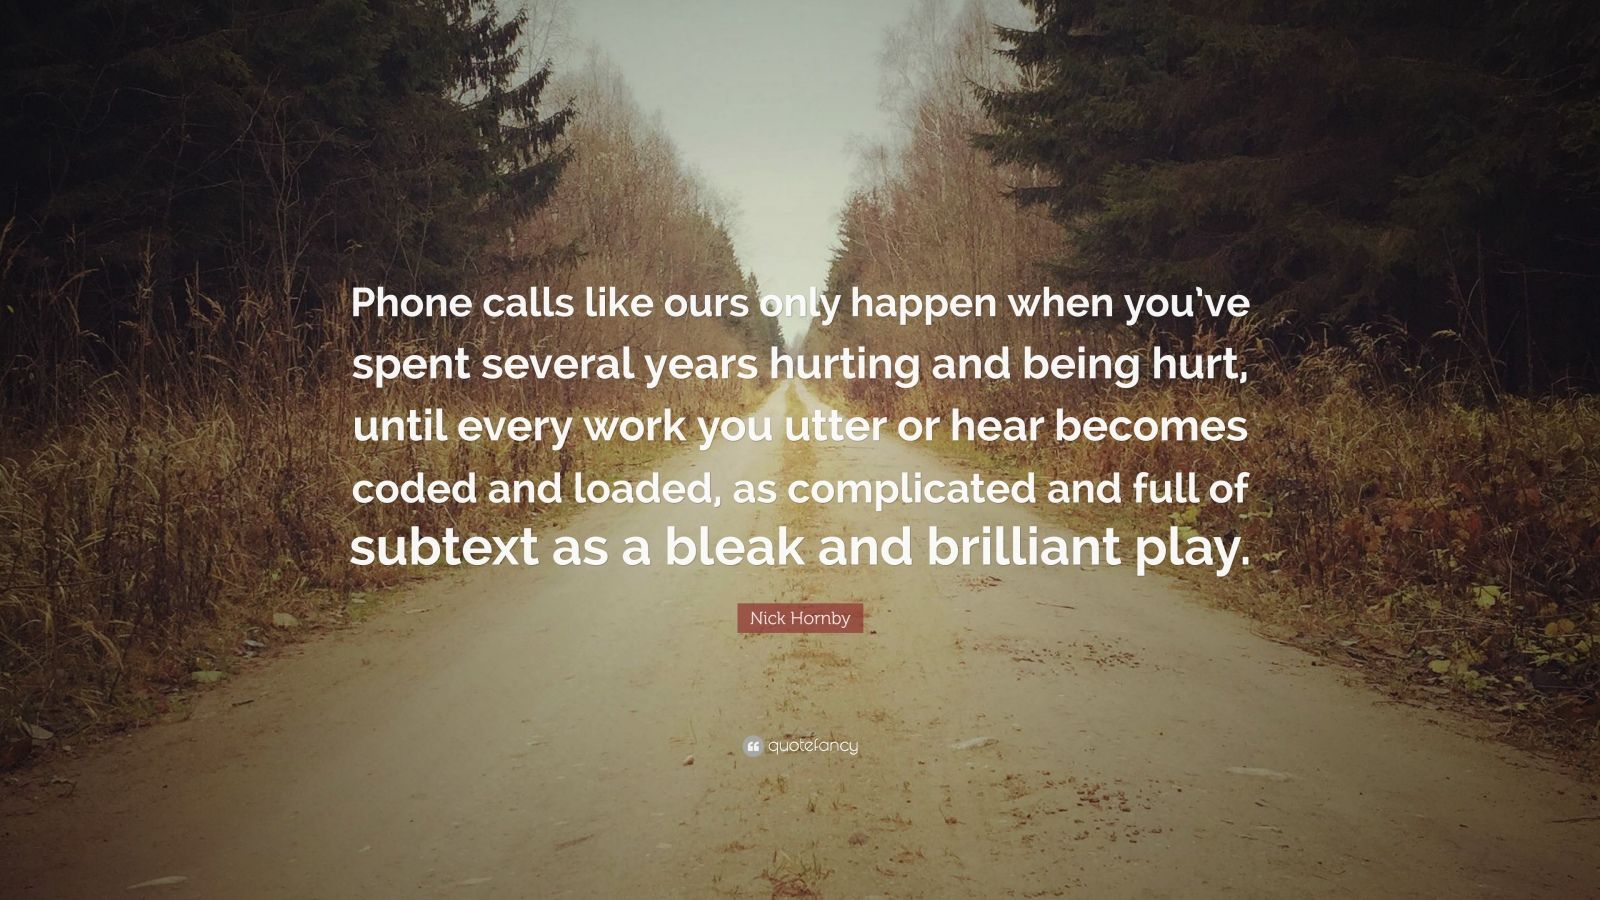 """Nick Hornby Quote: """"Phone calls like ours only happen when you've spent several years hurting and being hurt, until every work you utter or hear becomes coded and loaded, as complicated and full of subtext as a bleak and brilliant play."""""""